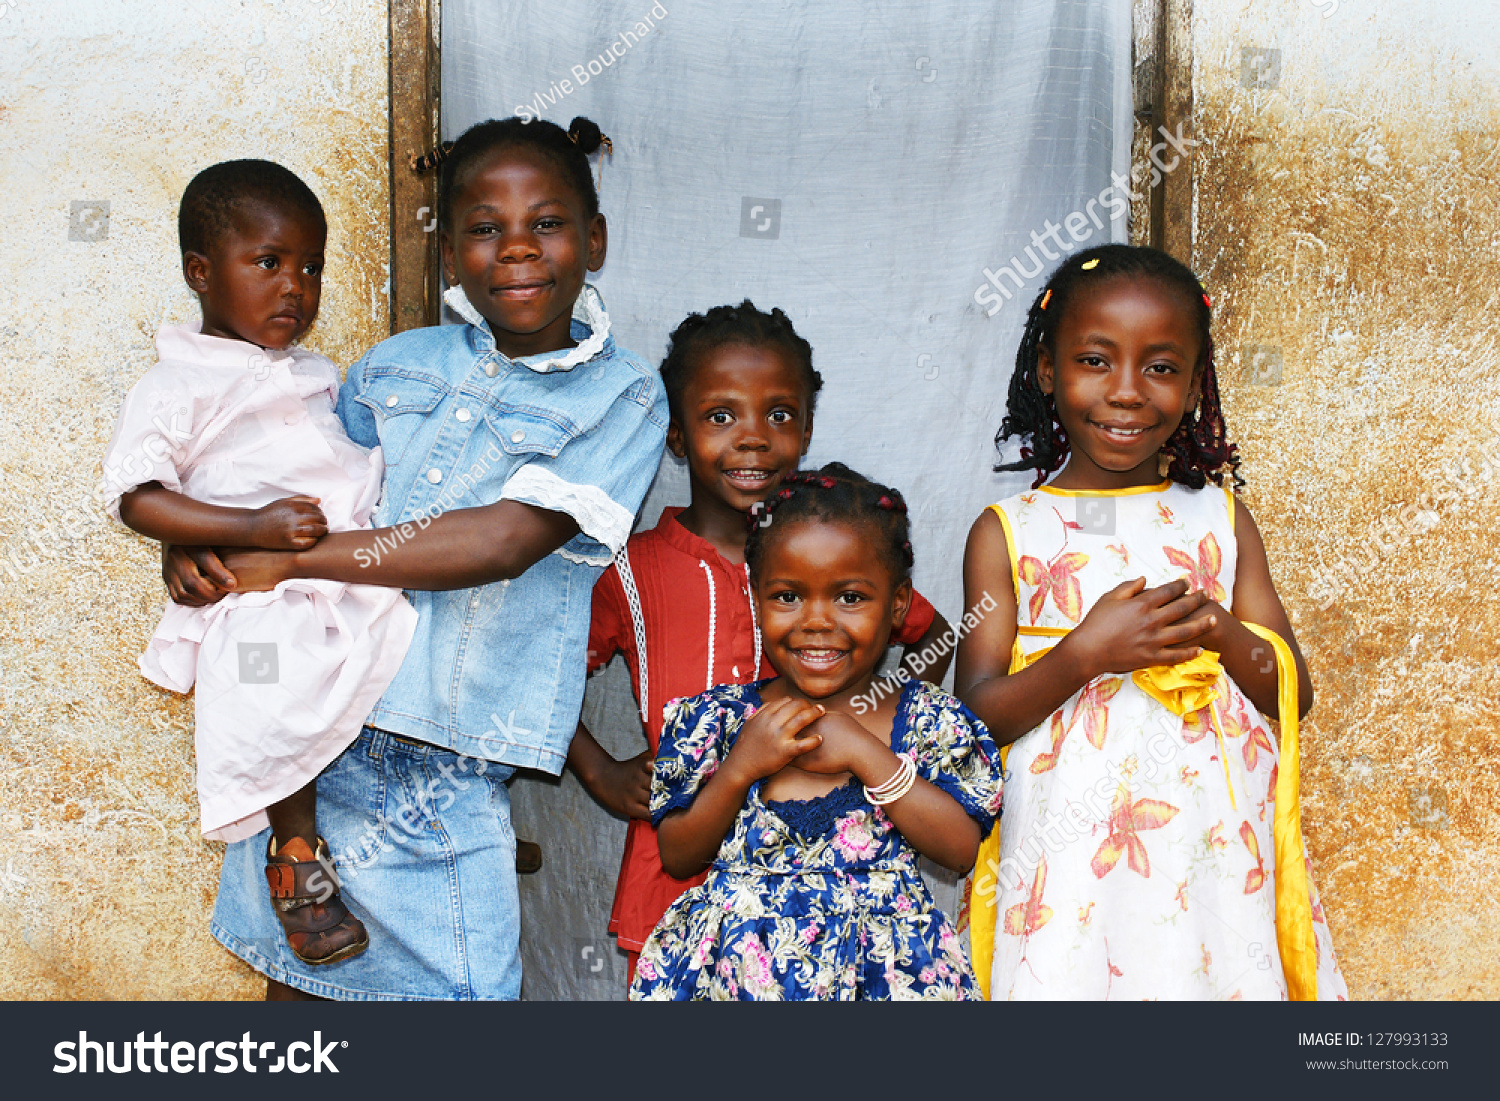 Real Candid Family Photo Of Five Cute And Sweet Black ...